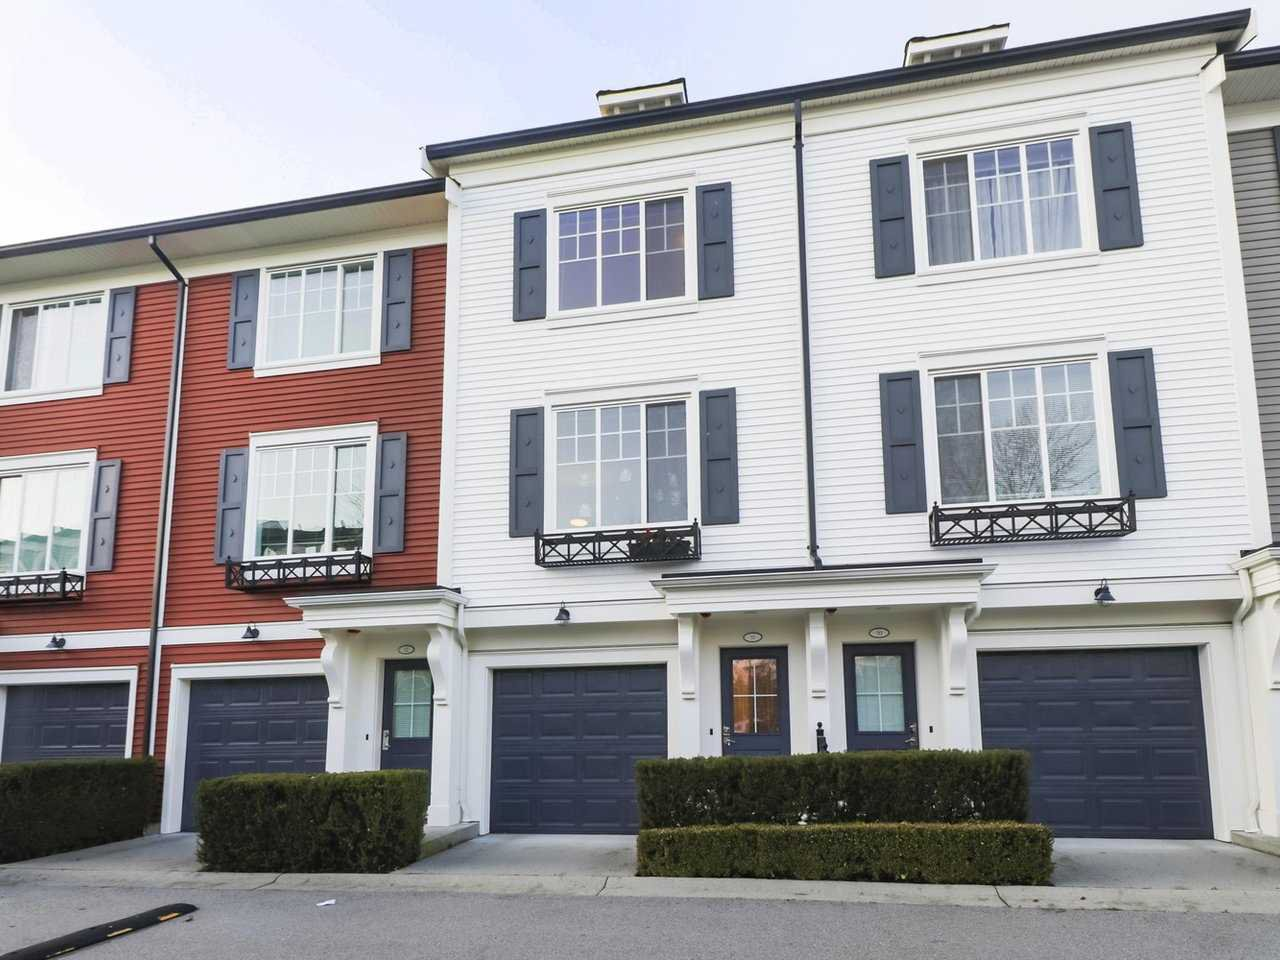 "Main Photo: 51 3010 RIVERBEND Drive in Coquitlam: Coquitlam East Townhouse for sale in ""Westwood"" : MLS®# R2426857"